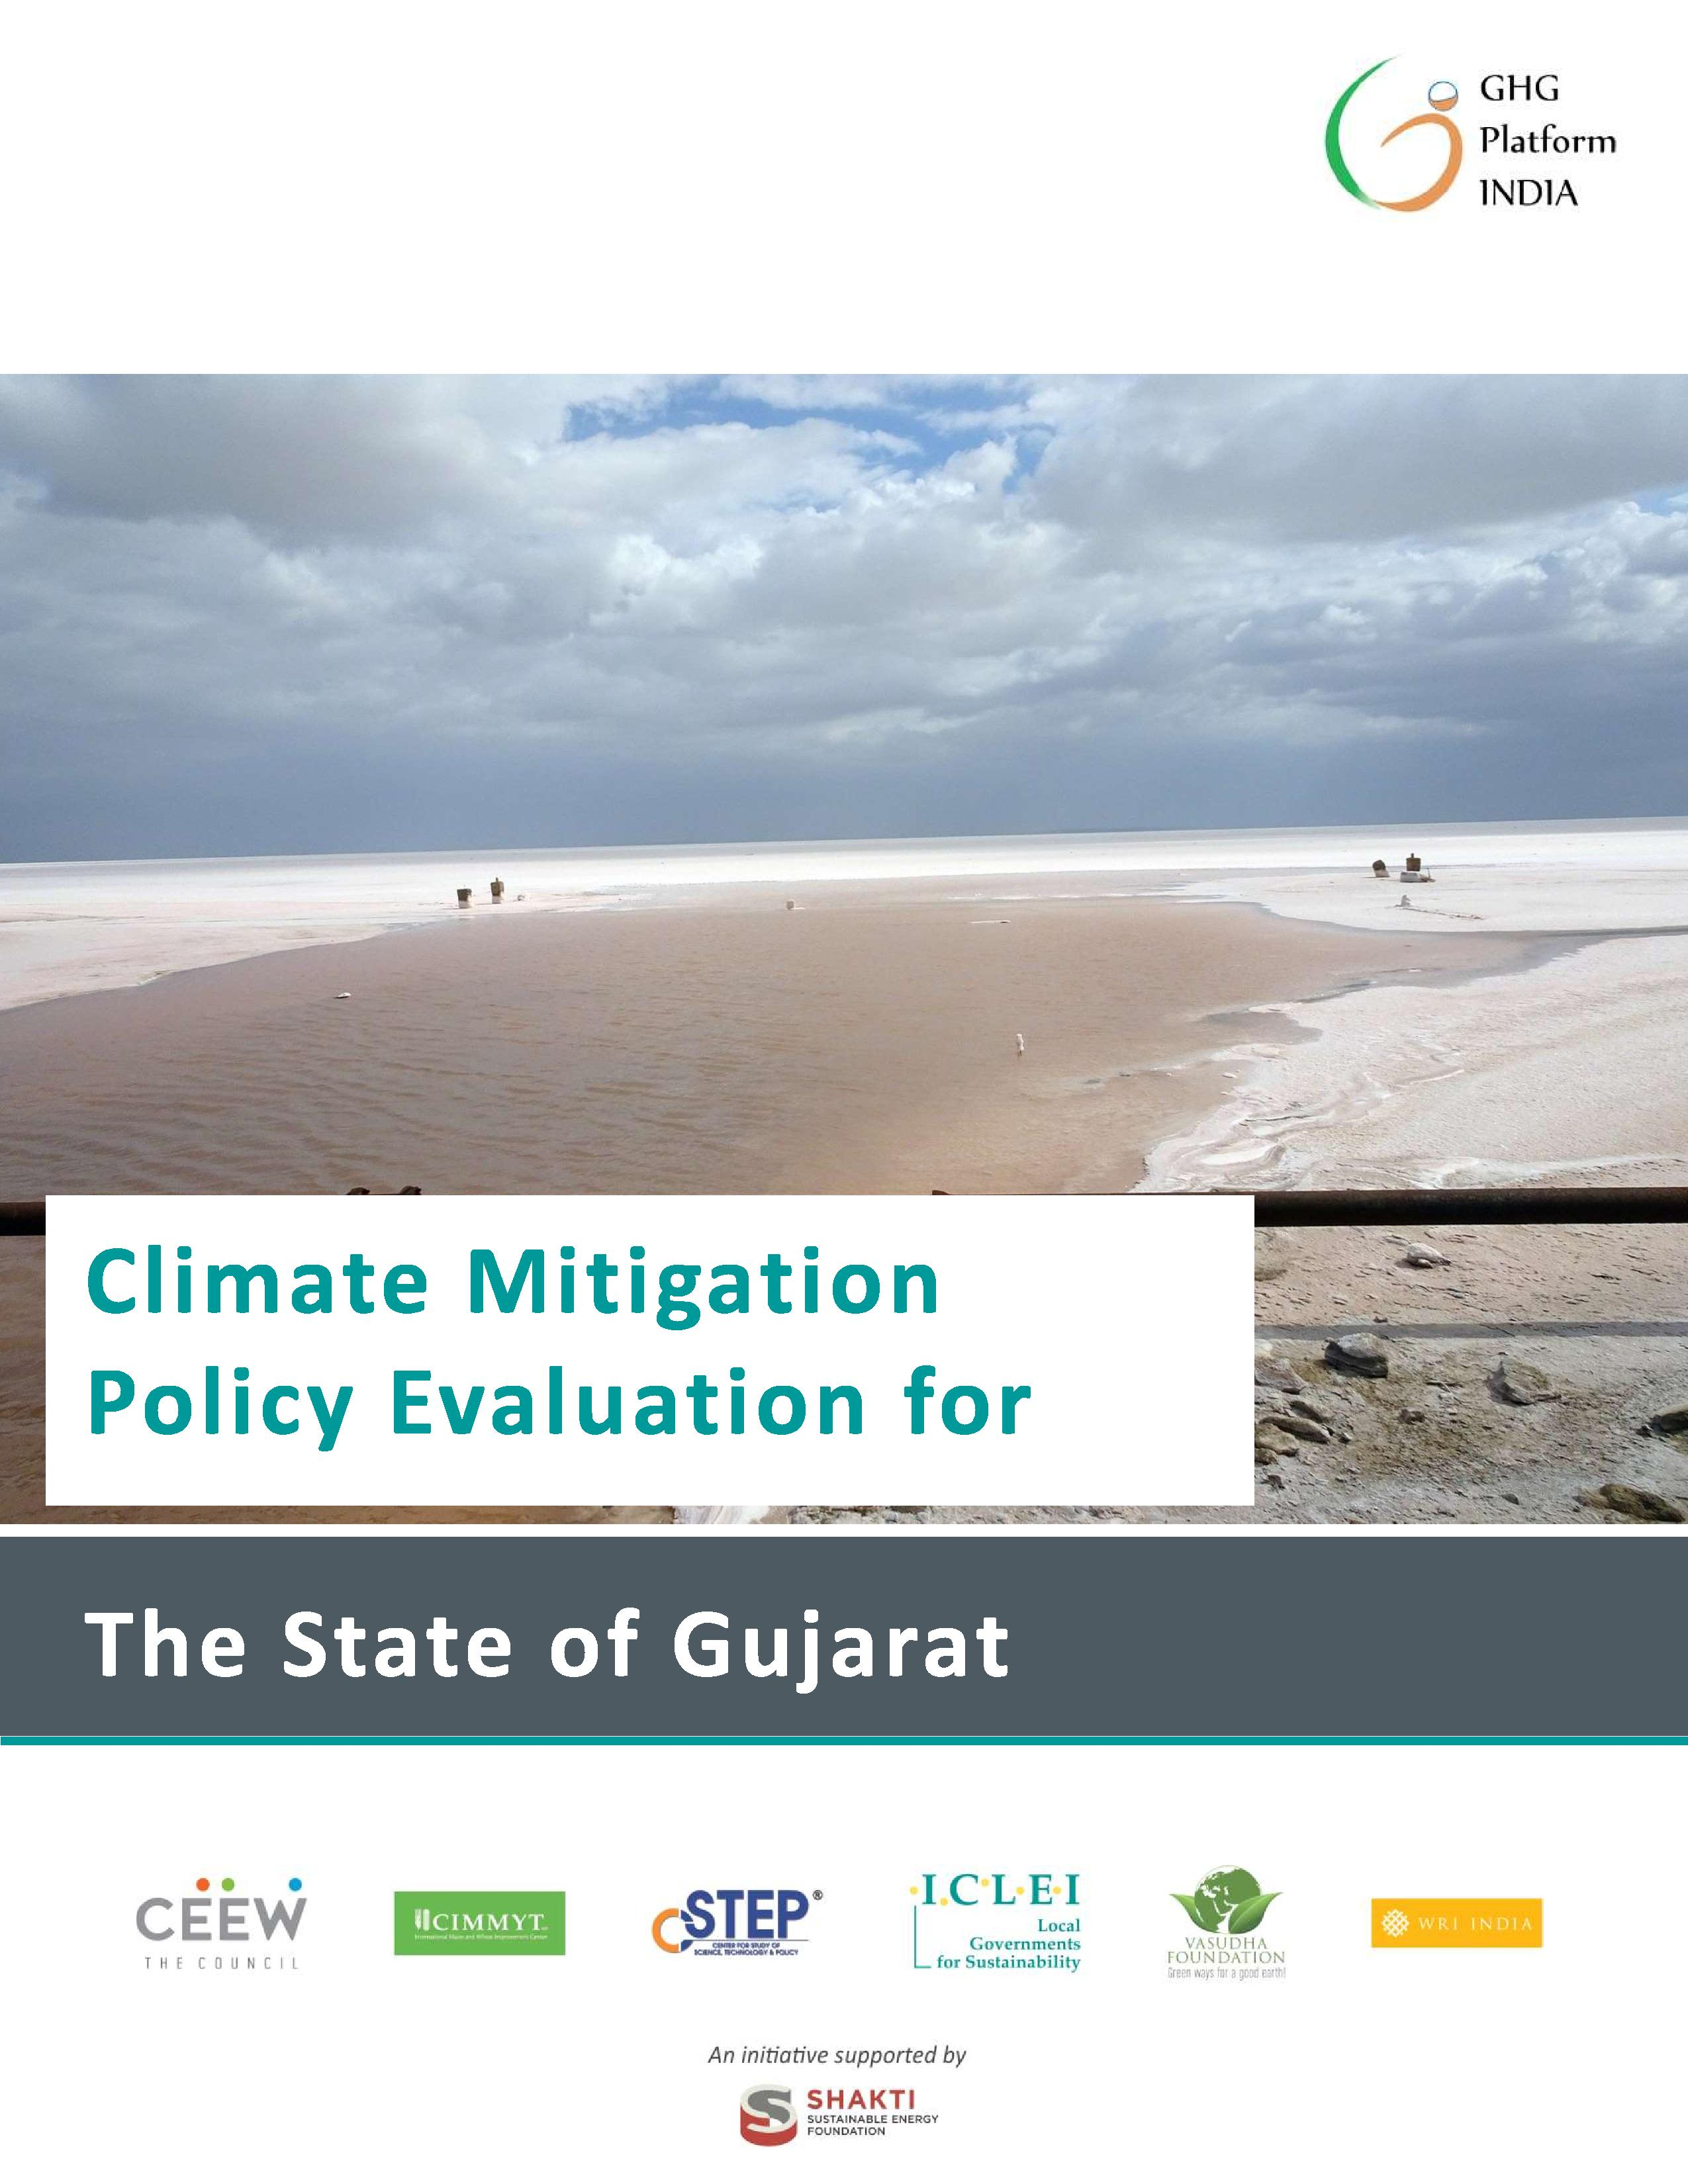 Climate Mitigation Policy Evaluation for the State of Gujarat - June 2020